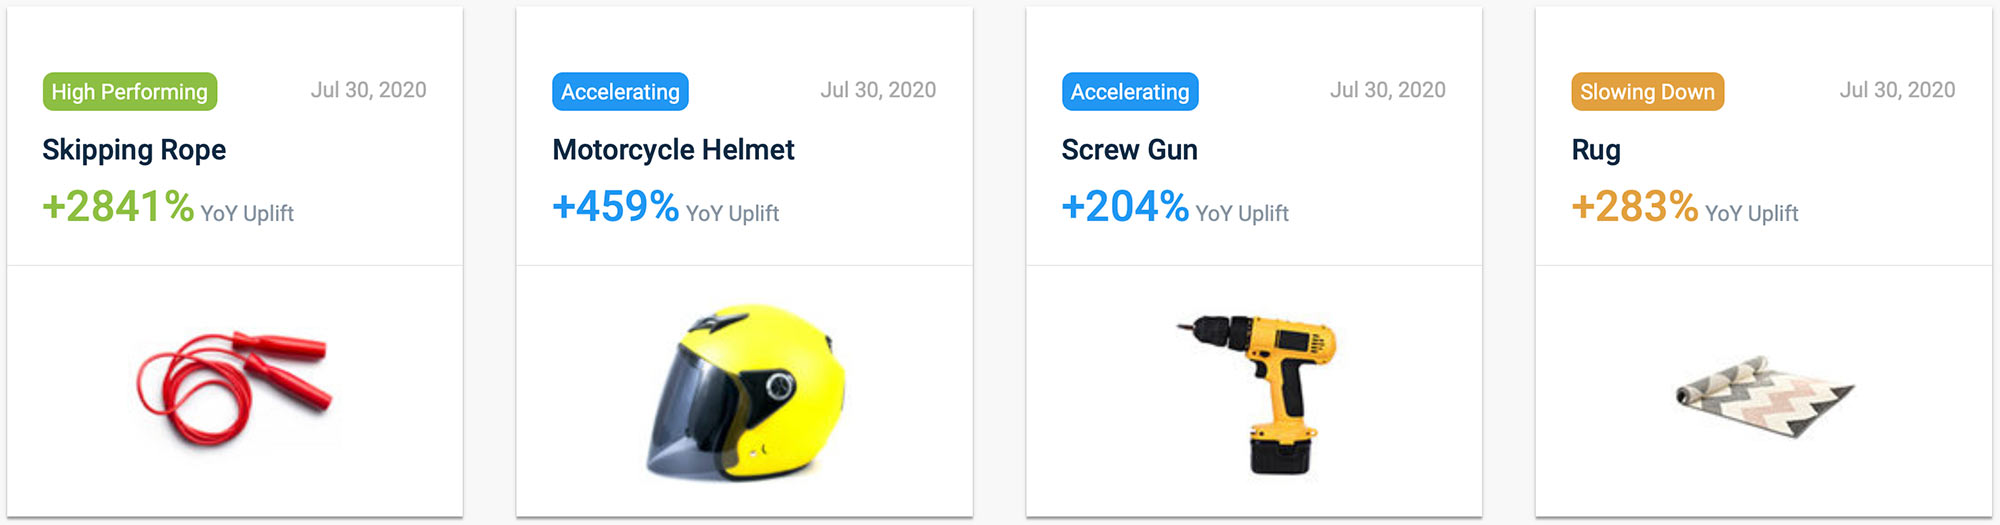 """Trending products for the twelve months ending July 30, 2020. Skipping ropes increased 2,841 percent year-over-year, followed by motorcycle helmets (459 percent), screw guns (204 percent), and rugs (283 percent) <em>Source: CC Insights.</em>"""" width=""""1002″ height=""""263″ srcset=""""https://www.practicalecommerce.com/wp-content/uploads/2020/08/pec-trends-1200-0723020.jpg 2000w, https://www.practicalecommerce.com/wp-content/uploads/2020/08/pec-trends-1200-0723020-300×79.jpg 300w, https://www.practicalecommerce.com/wp-content/uploads/2020/08/pec-trends-1200-0723020-570×150.jpg 570w, https://www.practicalecommerce.com/wp-content/uploads/2020/08/pec-trends-1200-0723020-768×202.jpg 768w, https://www.practicalecommerce.com/wp-content/uploads/2020/08/pec-trends-1200-0723020-1536×403.jpg 1536w, https://www.practicalecommerce.com/wp-content/uploads/2020/08/pec-trends-1200-0723020-150×39.jpg 150w, https://www.practicalecommerce.com/wp-content/uploads/2020/08/pec-trends-1200-0723020-500×131.jpg 500w"""" sizes=""""(max-width: 1002px) 100vw, 1002px""""></p> <p id="""